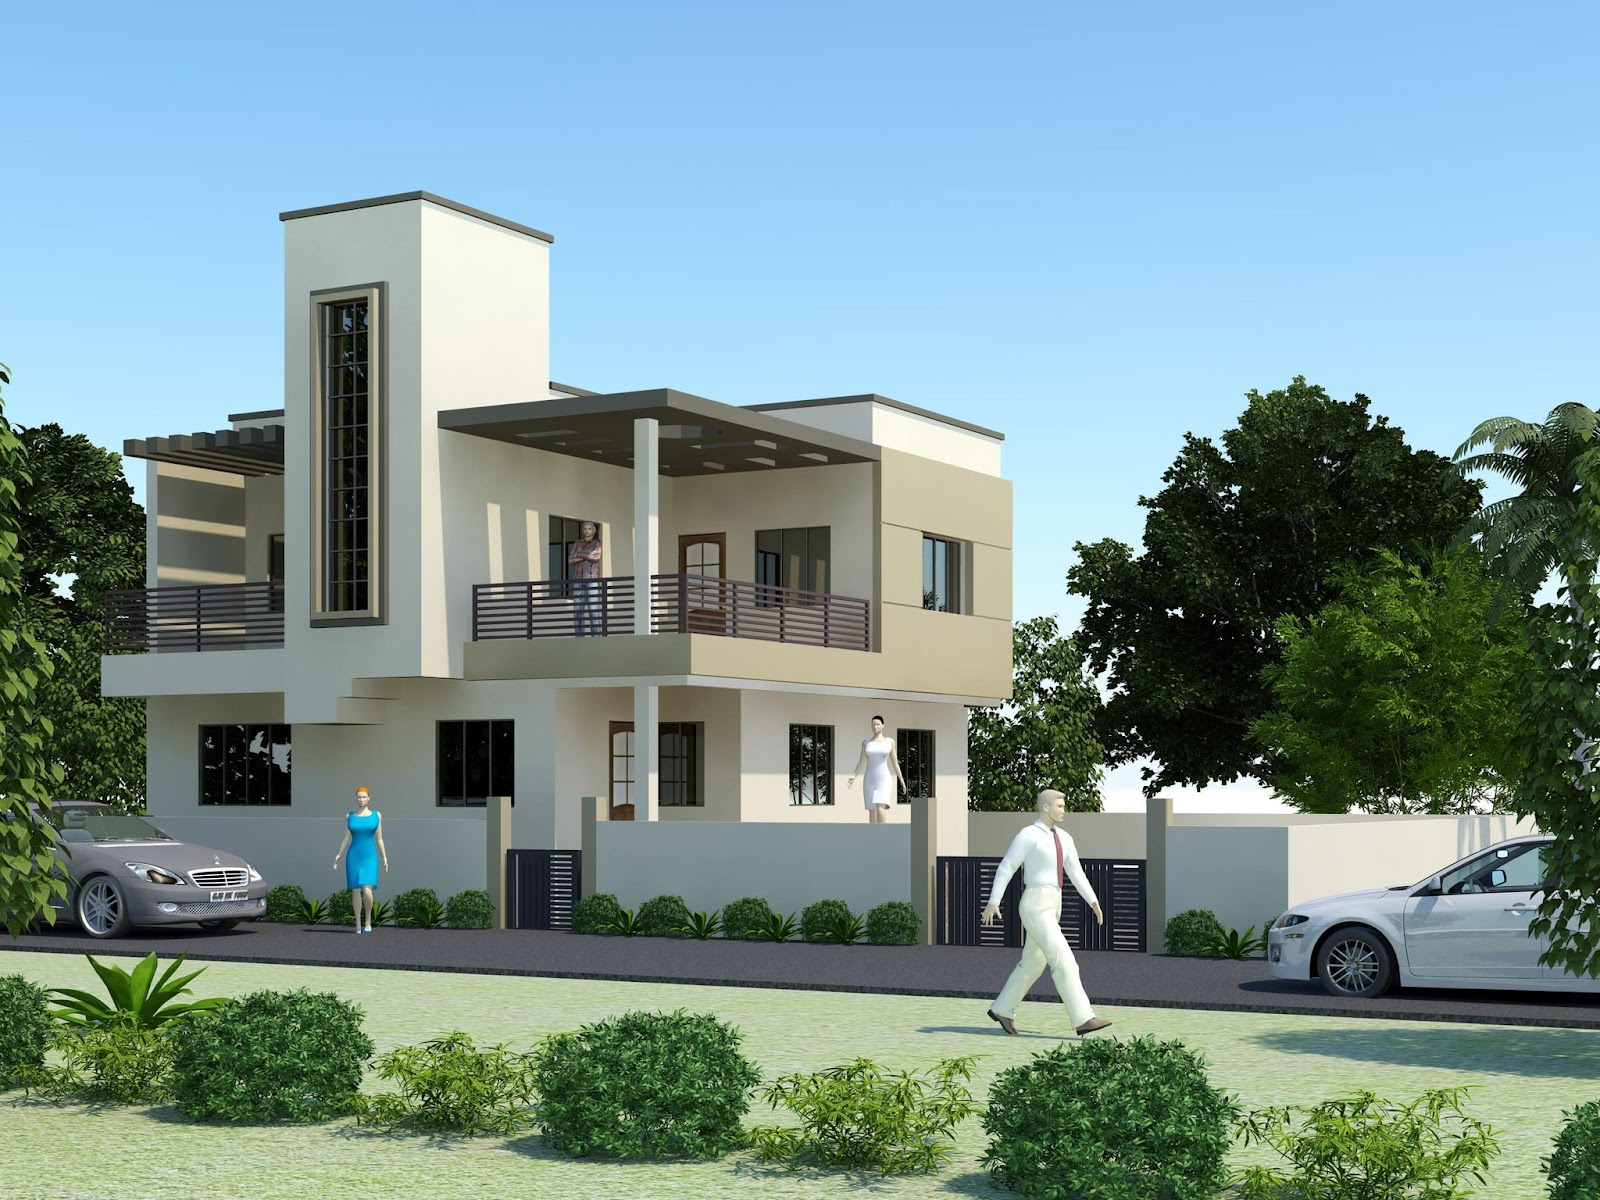 New home designs latest modern homes exterior designs front views pictures Front of home design ideas